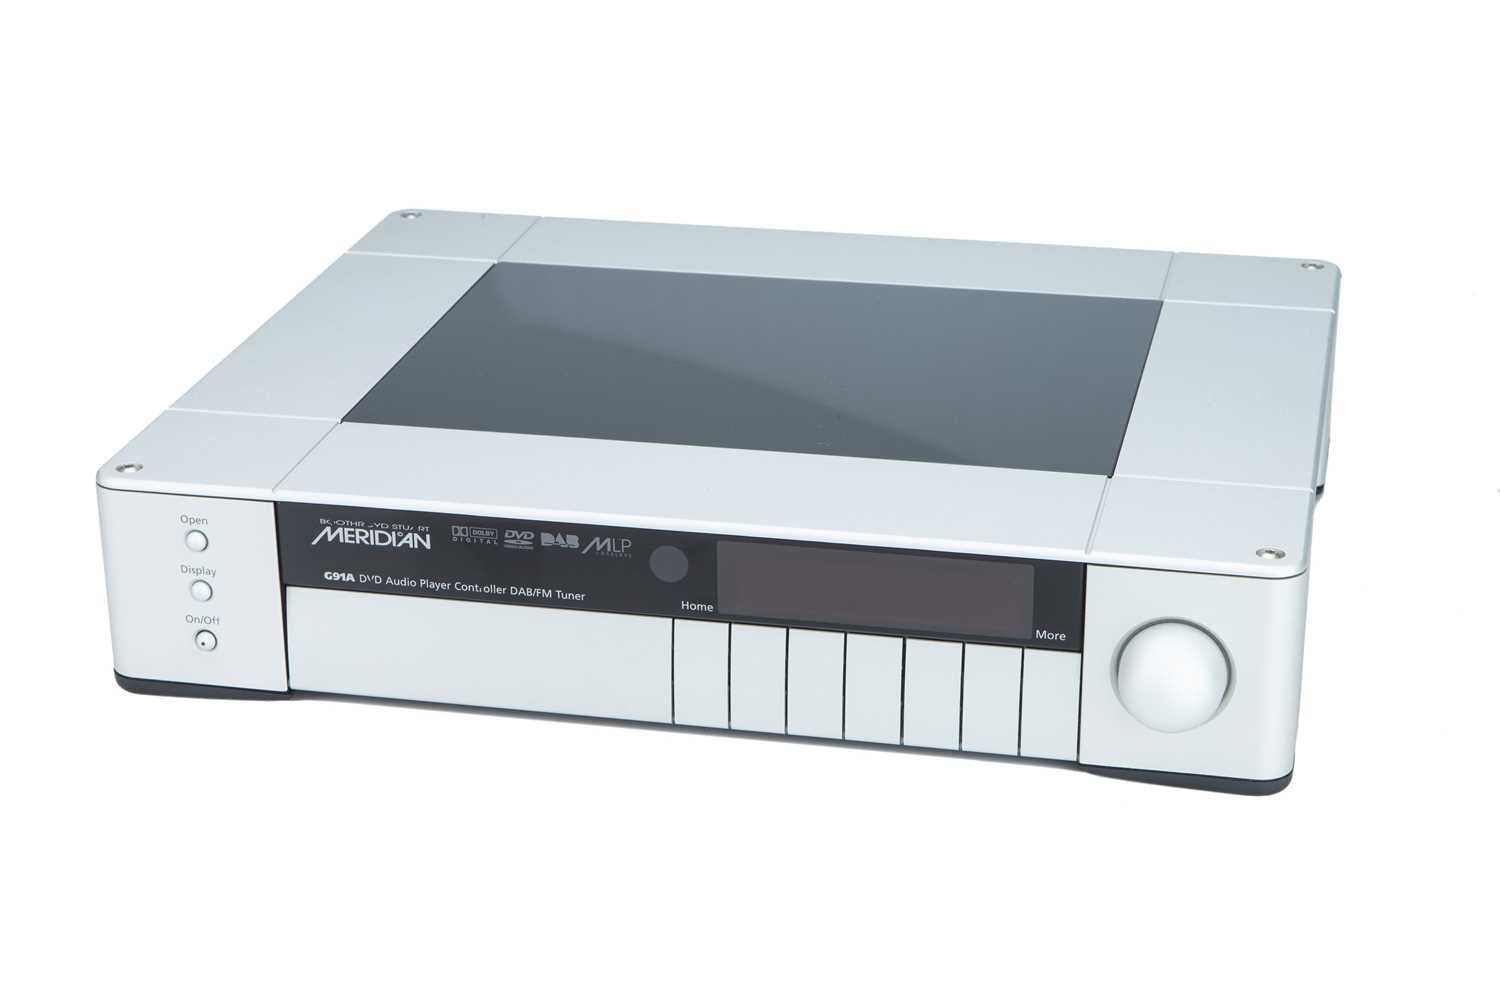 Lot 26 - Meridian G91A DAB, DVD player/controller/tuner, in Silver